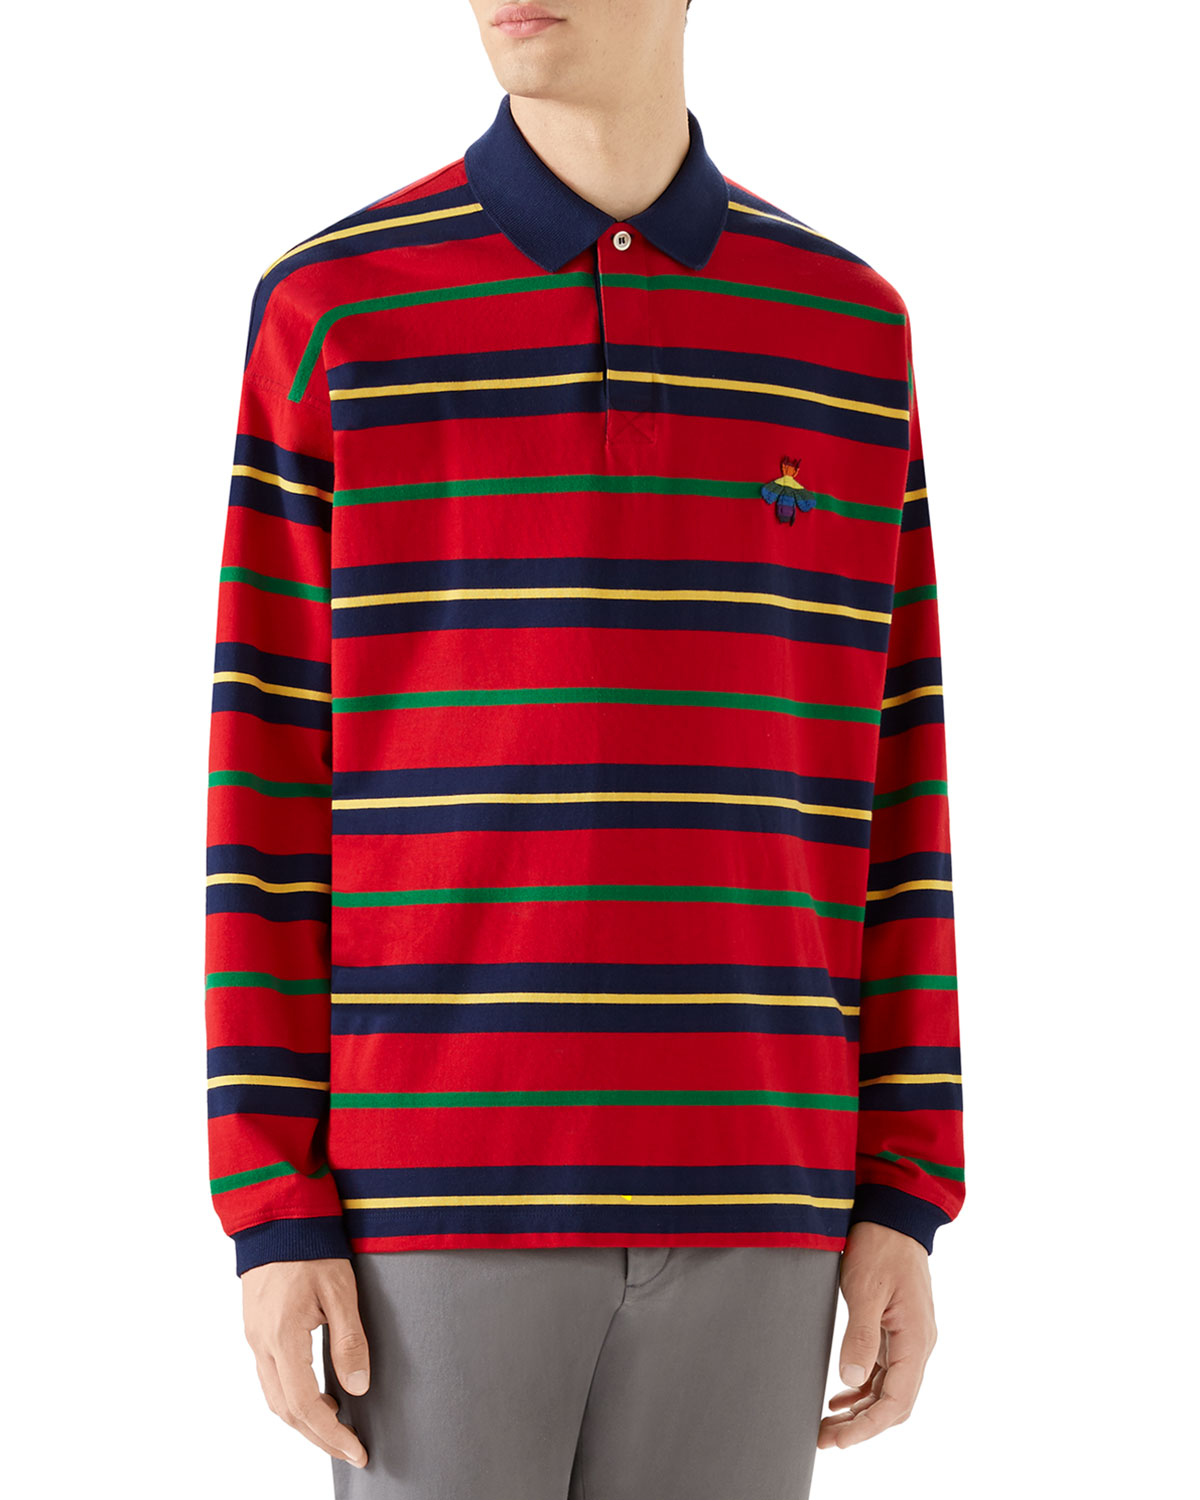 69c63ac0a Gucci Men's Long-Sleeve Rugby-Striped Polo Shirt | Neiman Marcus